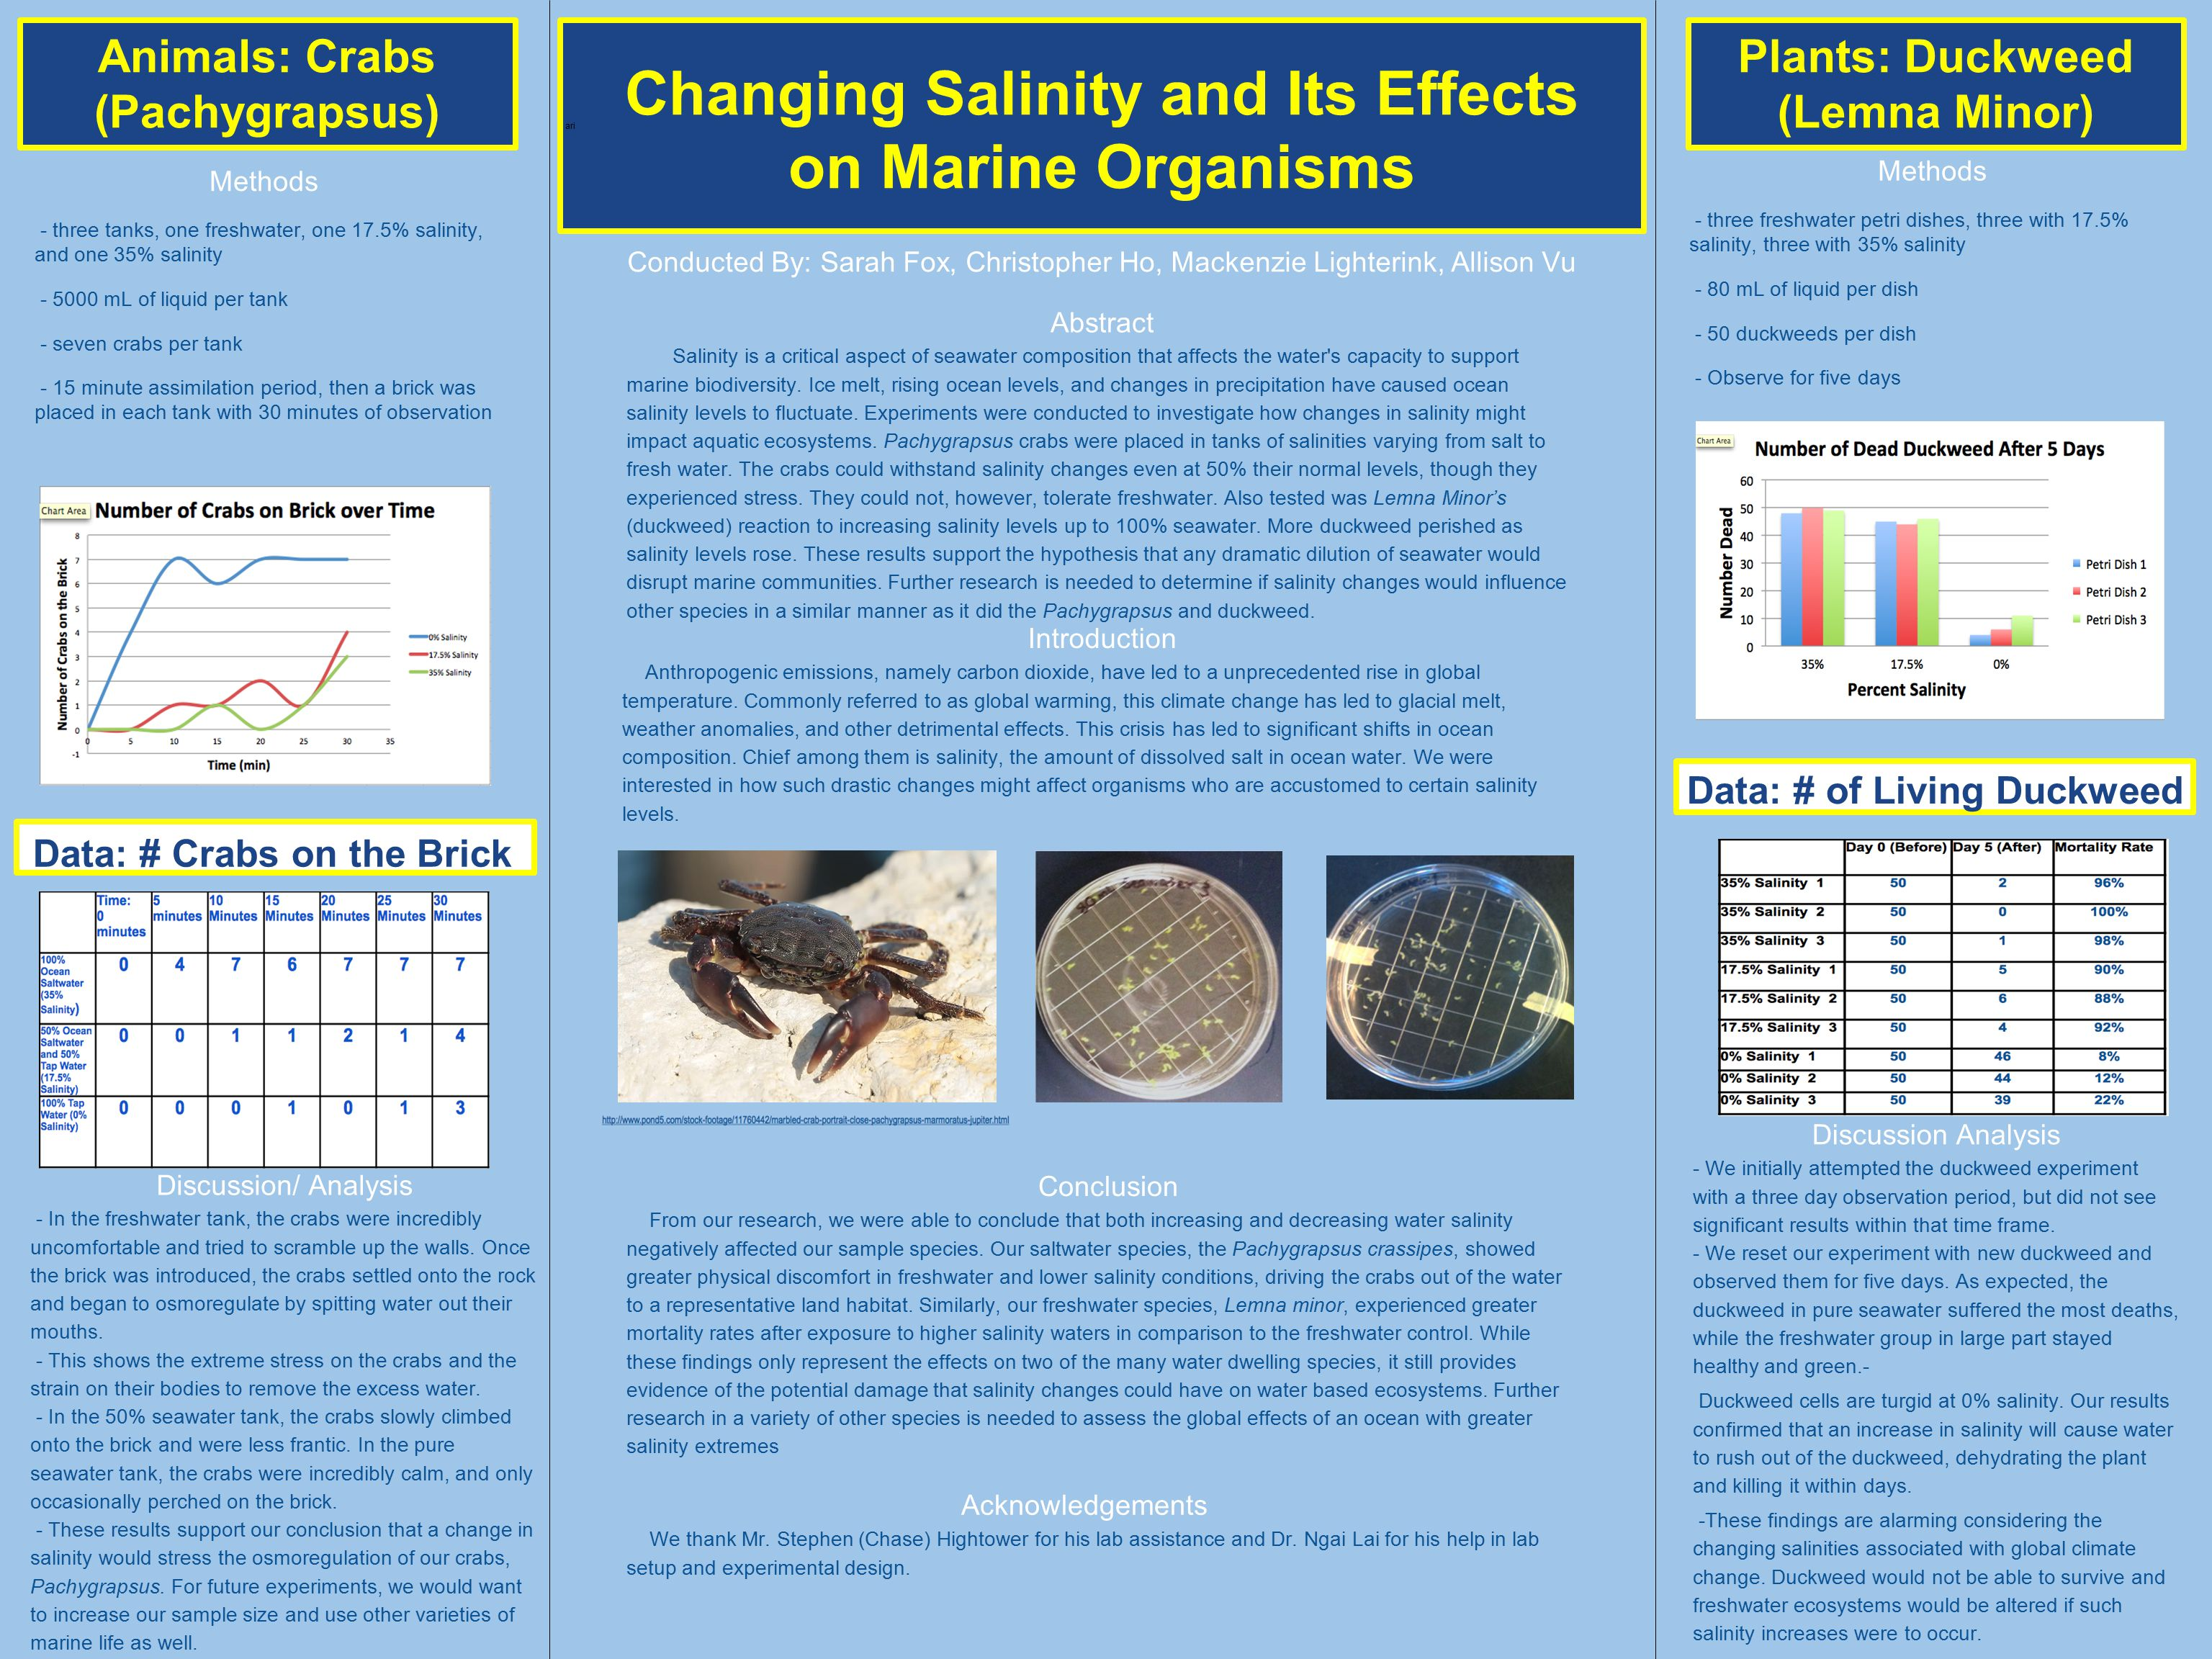 ari Changing Salinity and Its Effects on Marine Organisms Animals: Crabs (Pachygrapsus) Plants: Duckweed (Lemna Minor) Data: # Crabs on the Brick Data: # of Living Duckweed Methods - three tanks, one freshwater, one 17.5% salinity, and one 35% salinity - 5000 mL of liquid per tank - seven crabs per tank - 15 minute assimilation period, then a brick was placed in each tank with 30 minutes of observation Discussion/ Analysis - In the freshwater tank, the crabs were incredibly uncomfortable and tried to scramble up the walls.